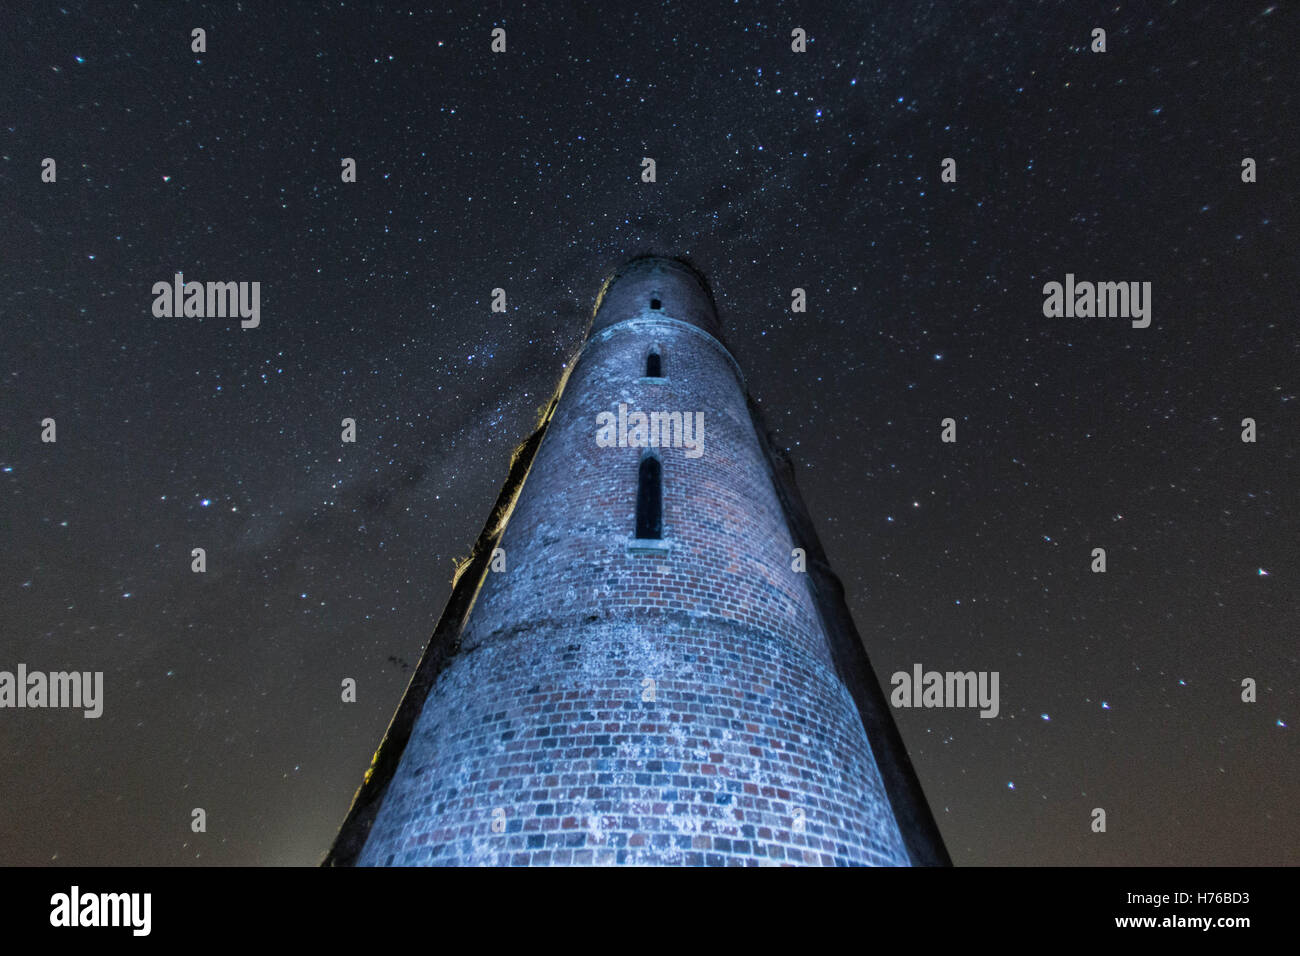 Astro photography at Horton Tower, Dorset, searching for the Northern Lights - Stock Image